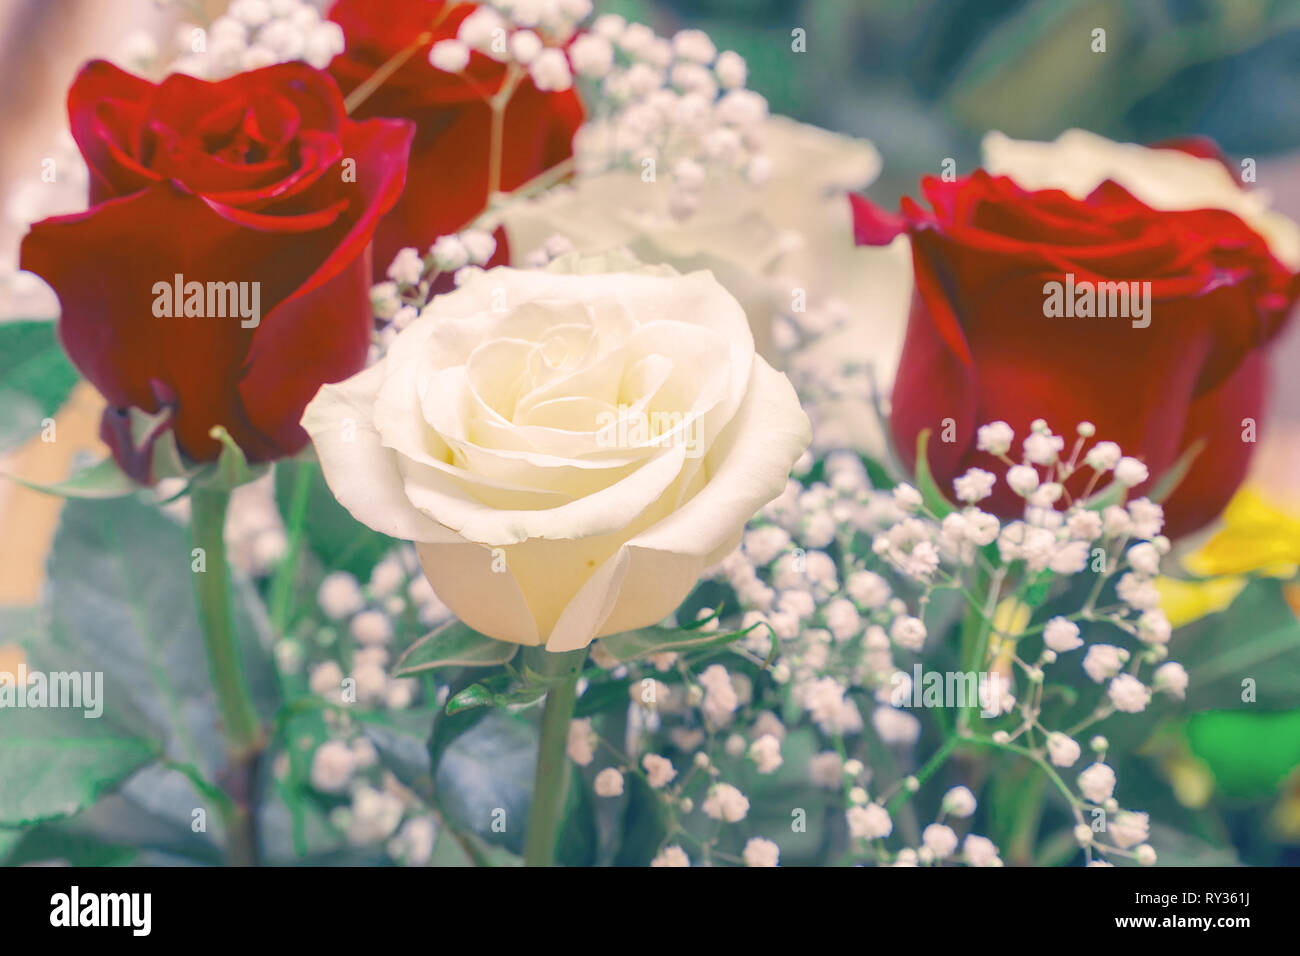 Bouquet of red and white roses. Decorative floral arrangement of white and red roses Stock Photo